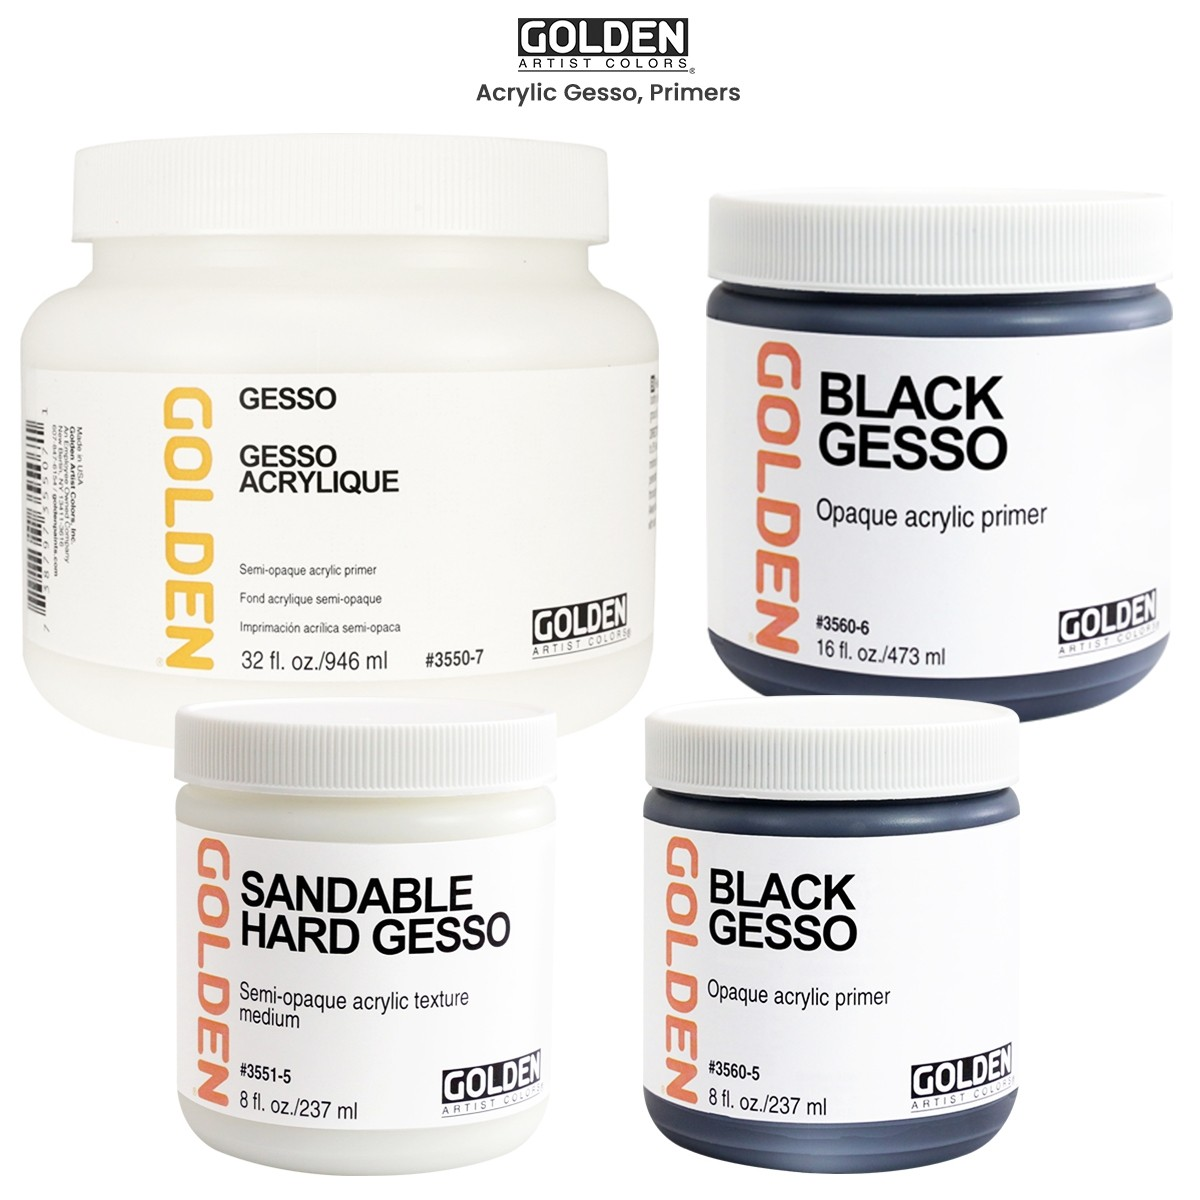 GOLDEN Gesso - Conform to a variety of texture without cracking!